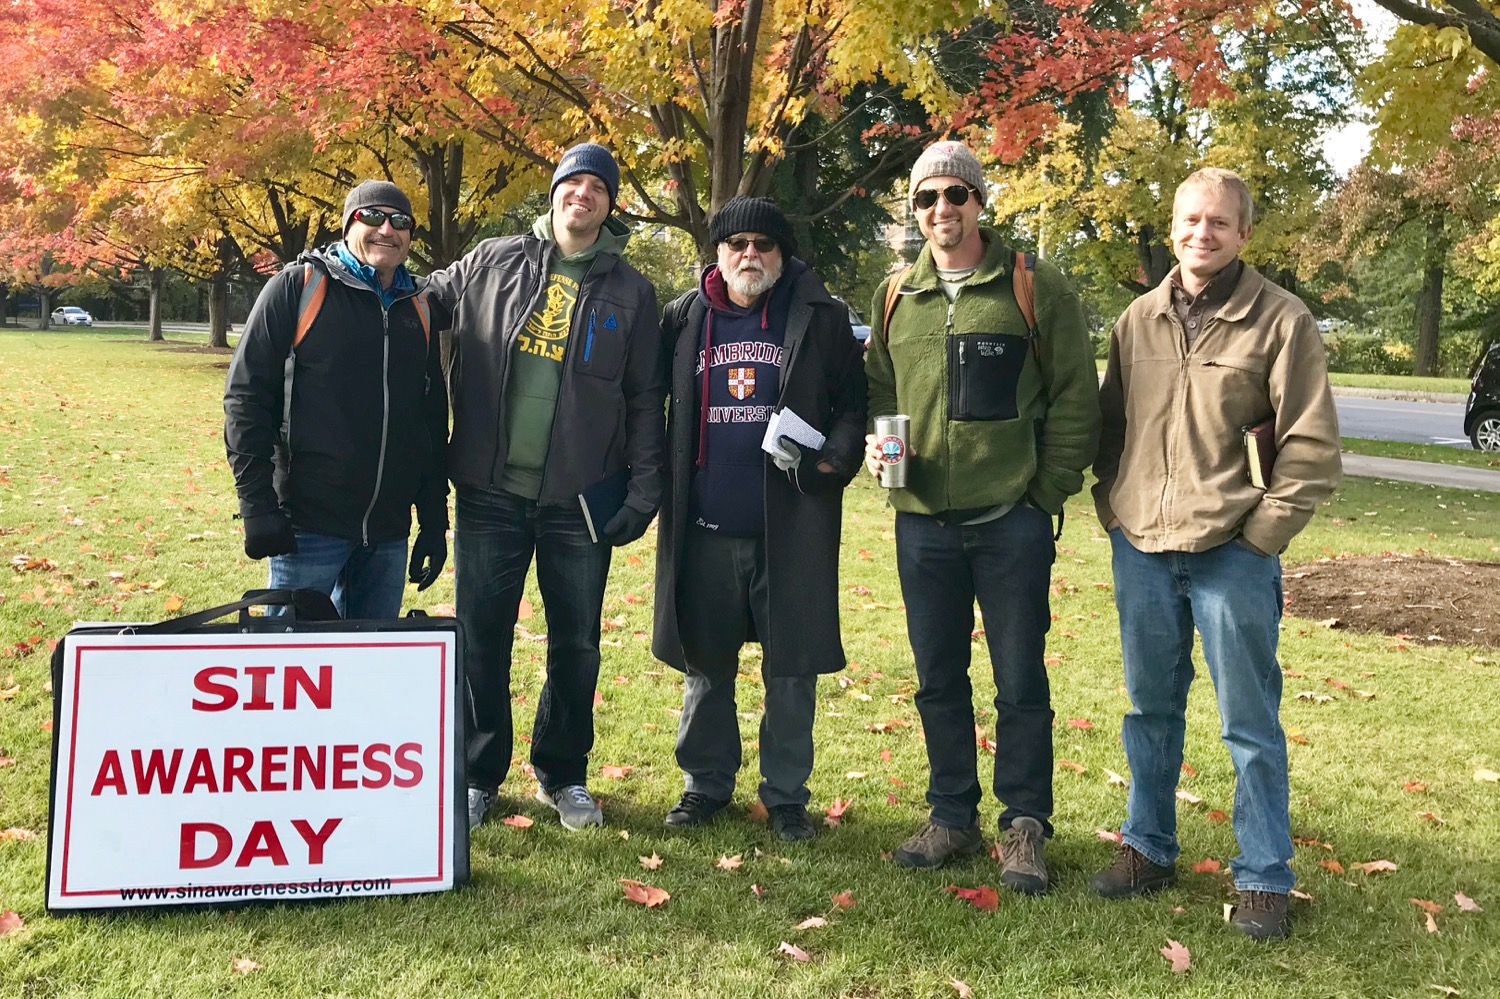 It was a great team of preachers at Rochester University and downtown Rochester, NY on a crisp autumn day.